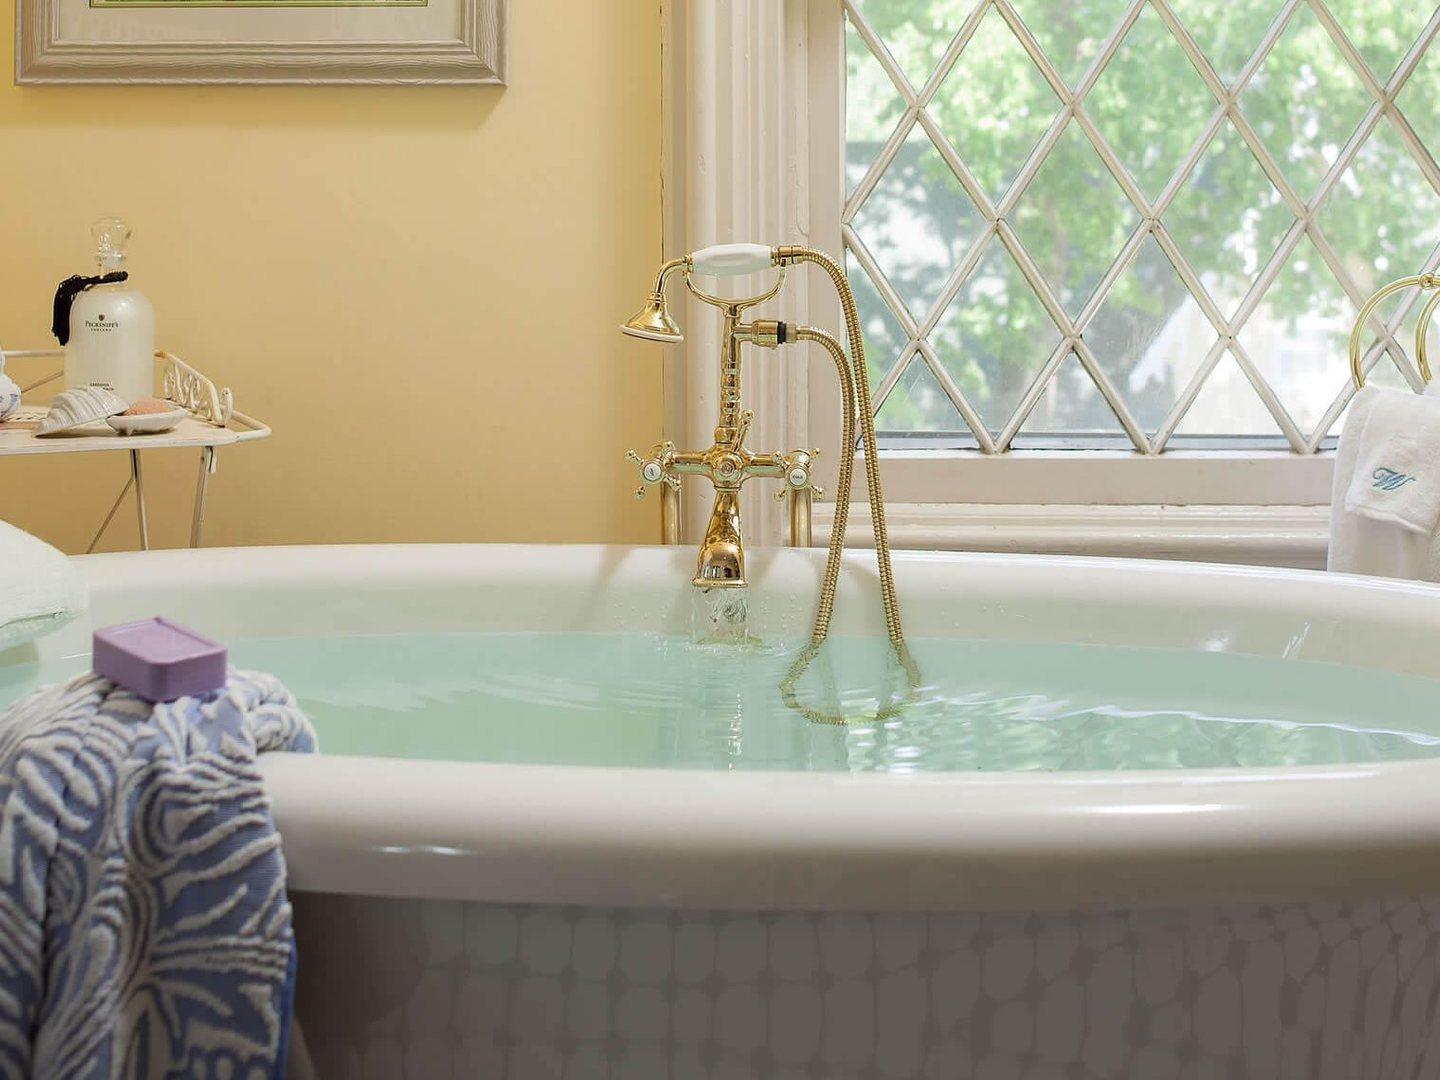 A white tub sitting next to a window at Inn at Woodhaven.